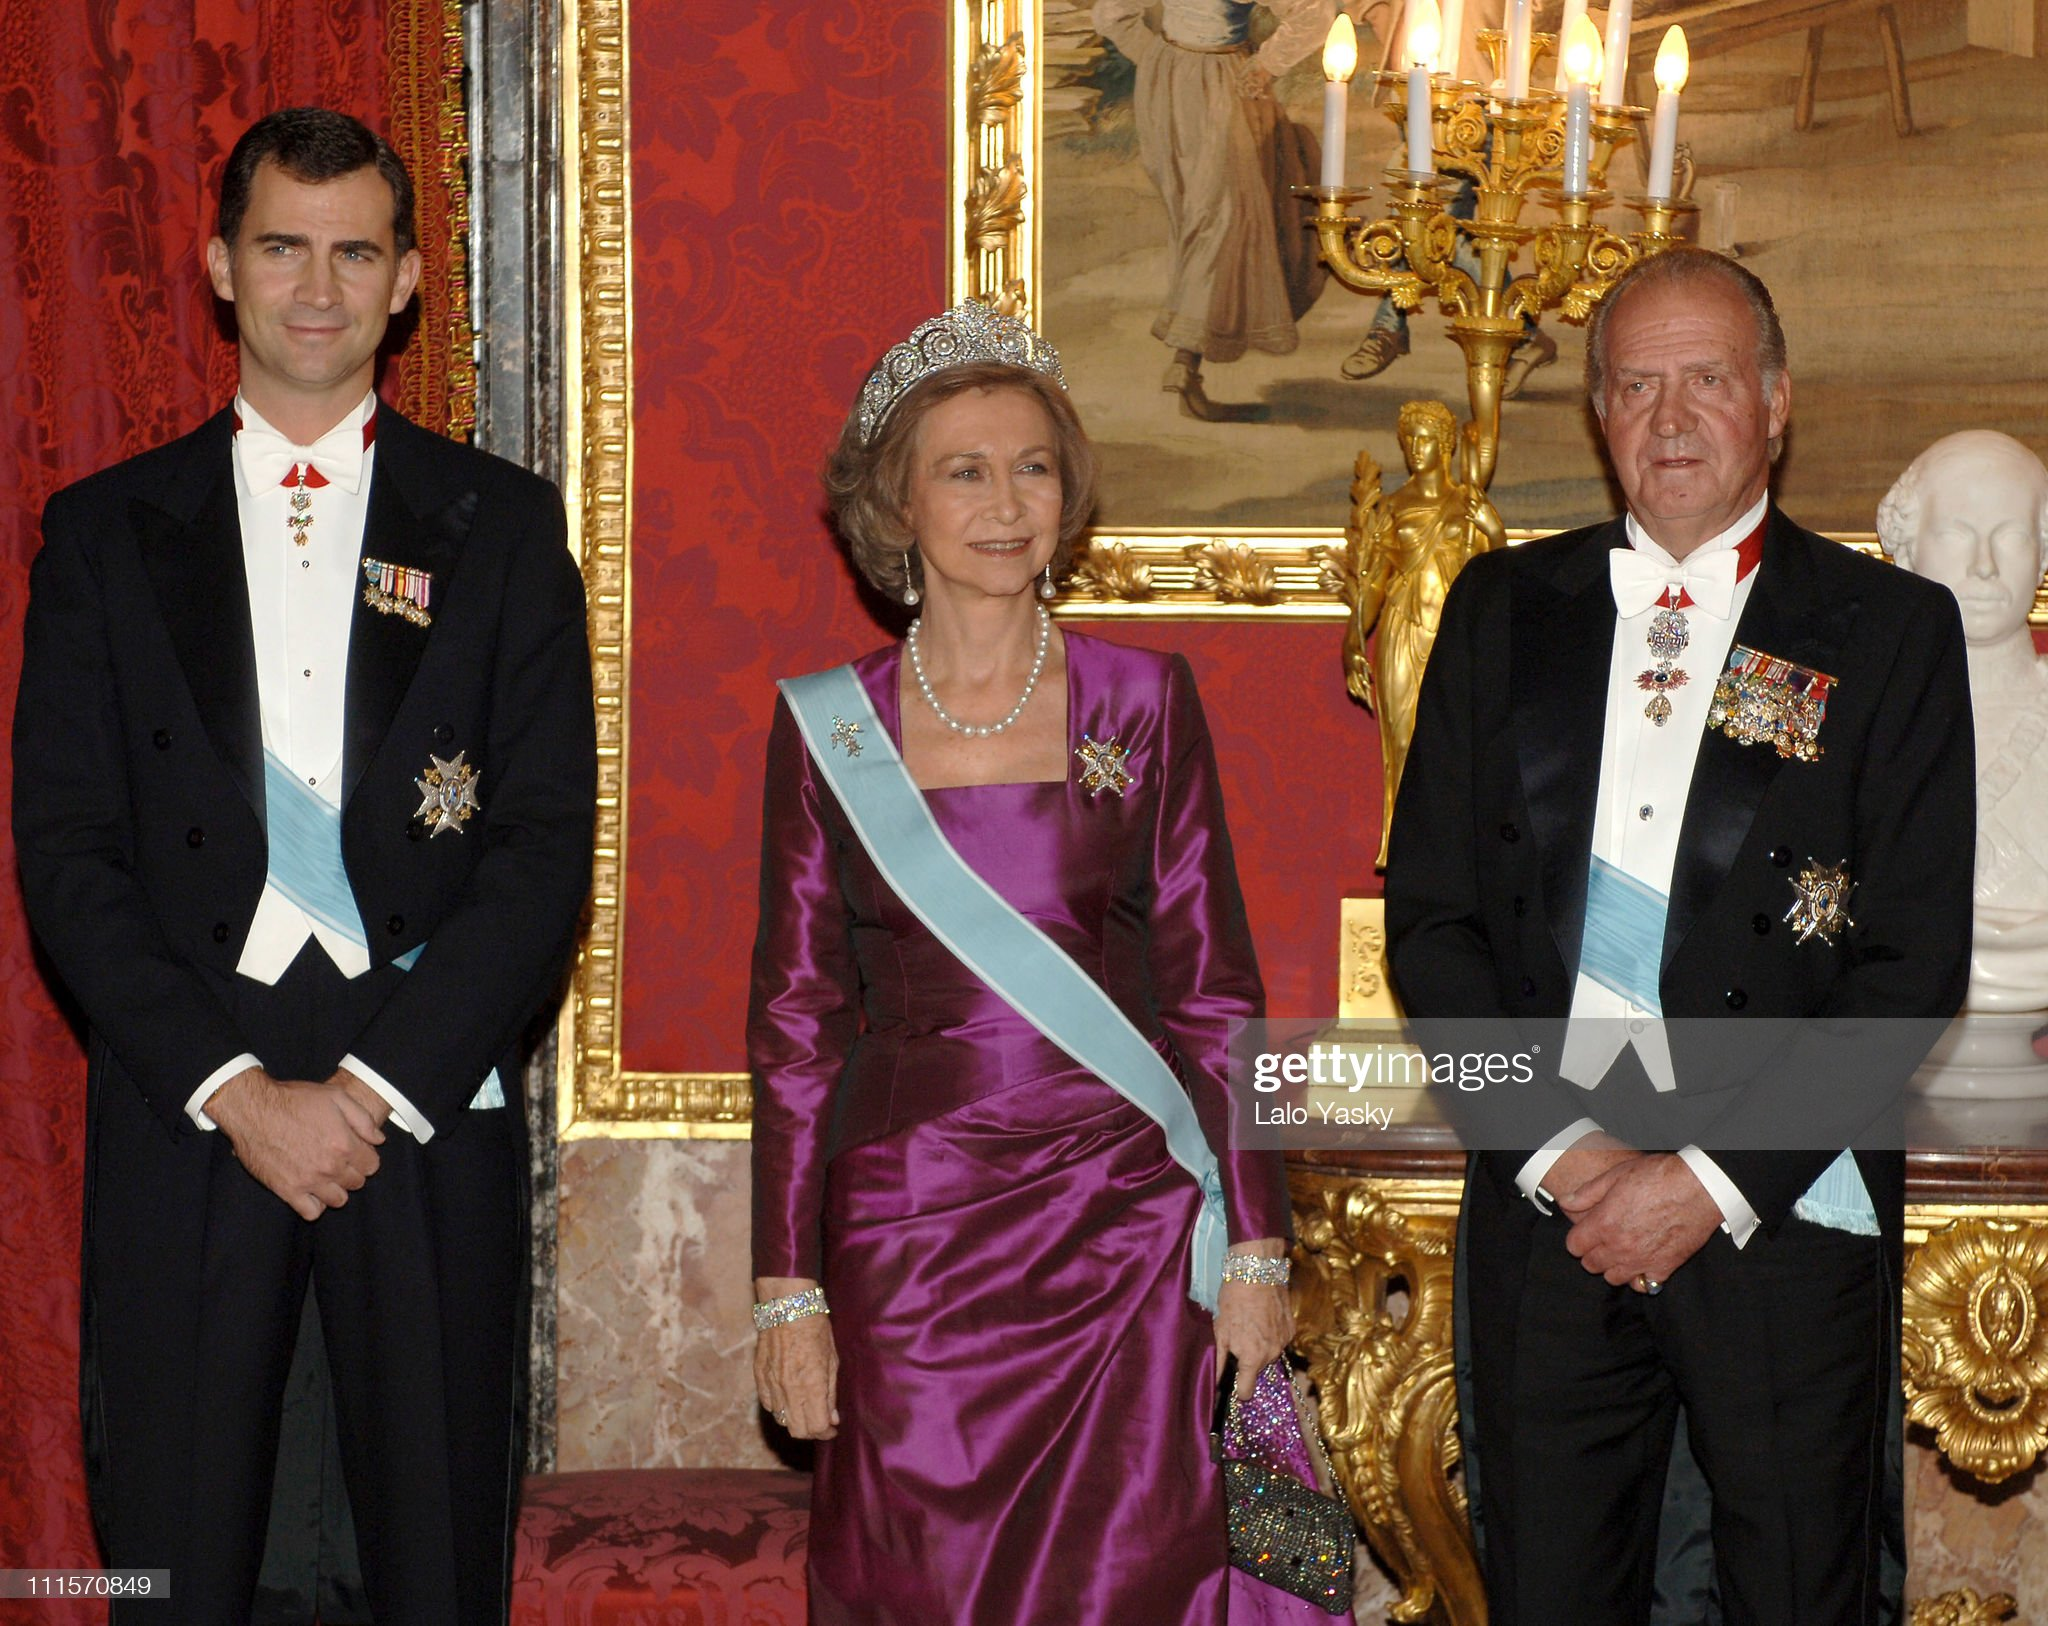 Spanish Royal Family Receive Chinese President Hu Jintao and Wife Liu Yongqing For a Gala Dinner - November 14, 2005 : News Photo